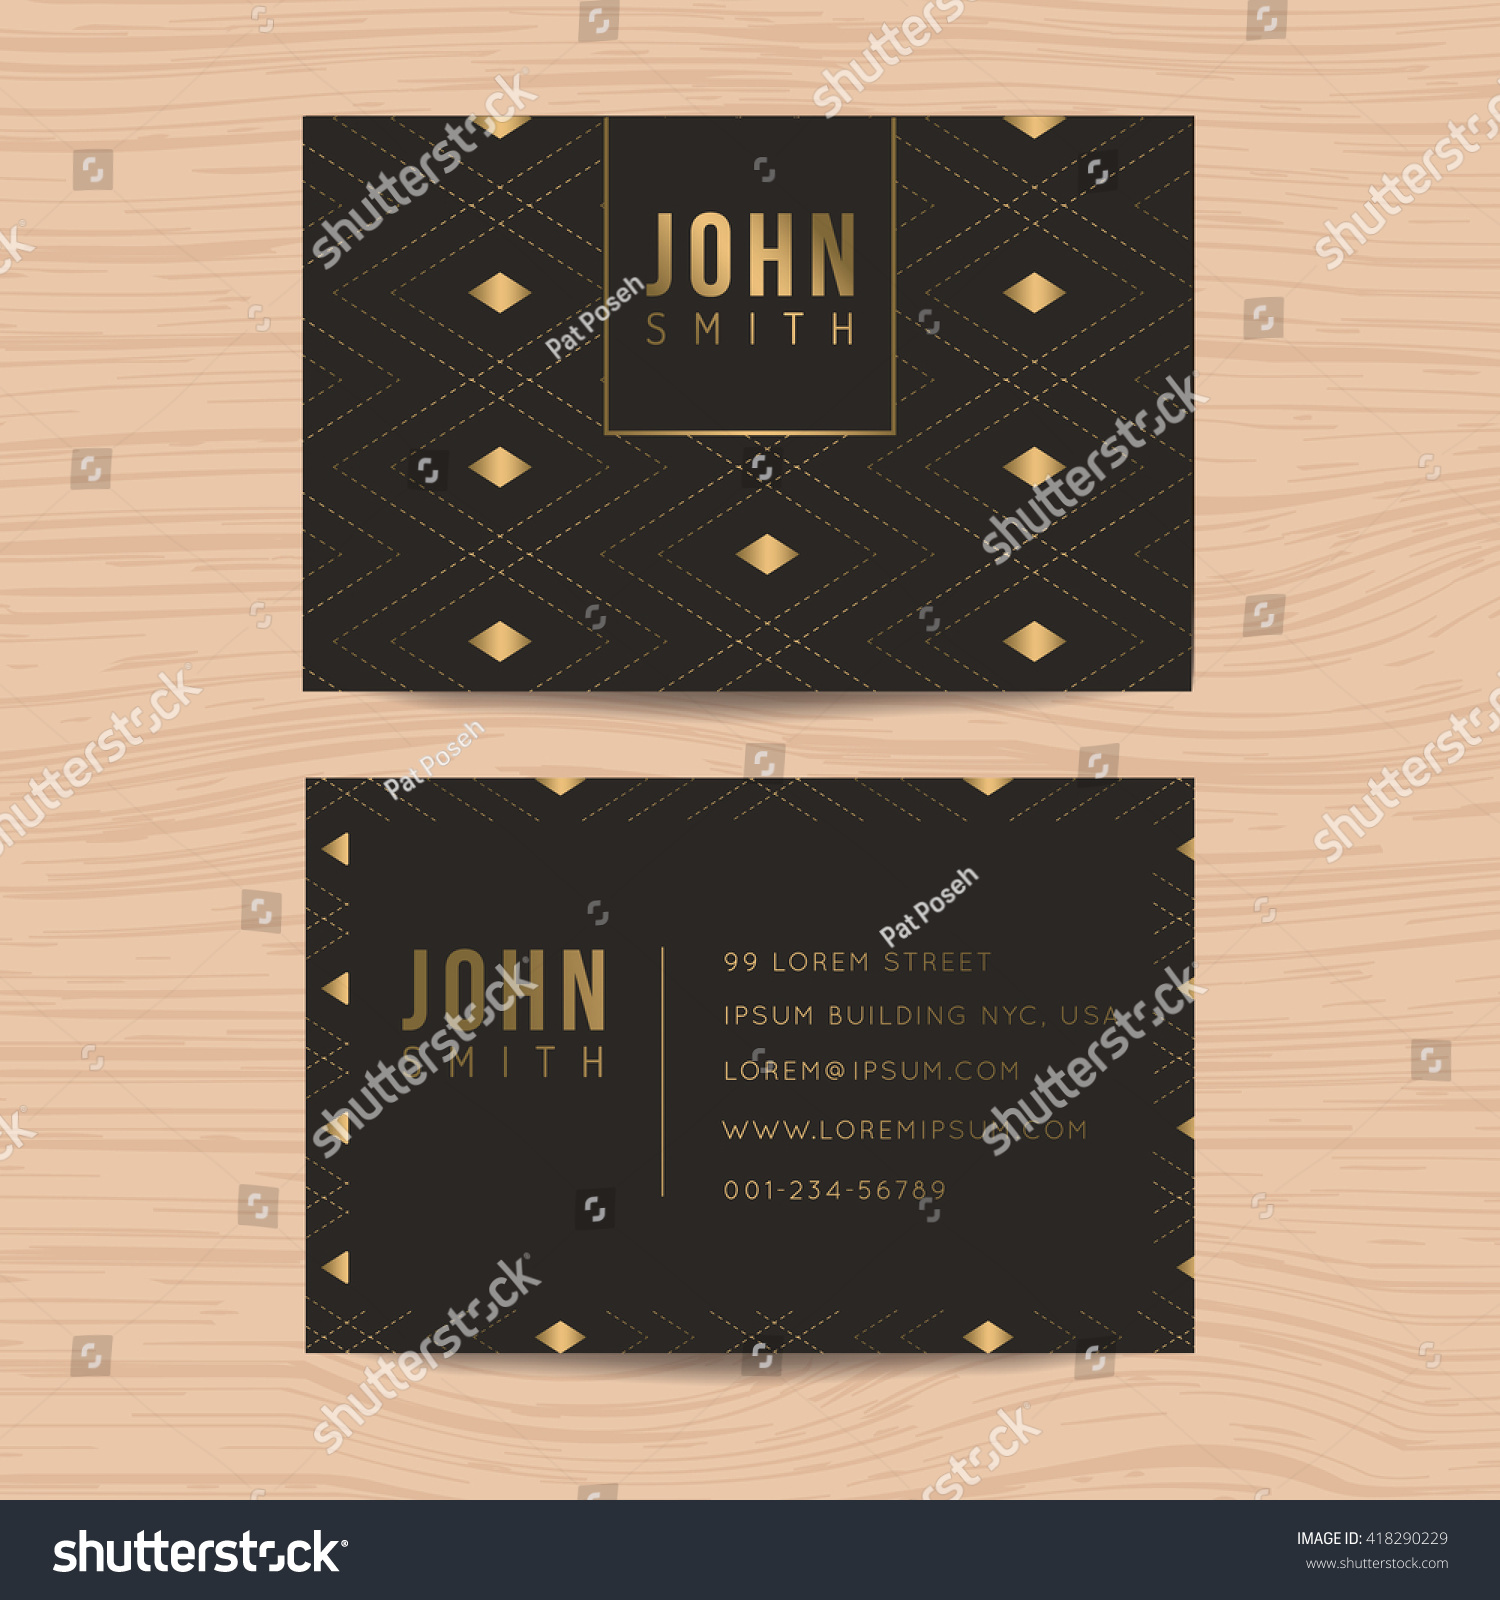 Modern Clean Design Business Card Template Stock Vector 418290229 ...